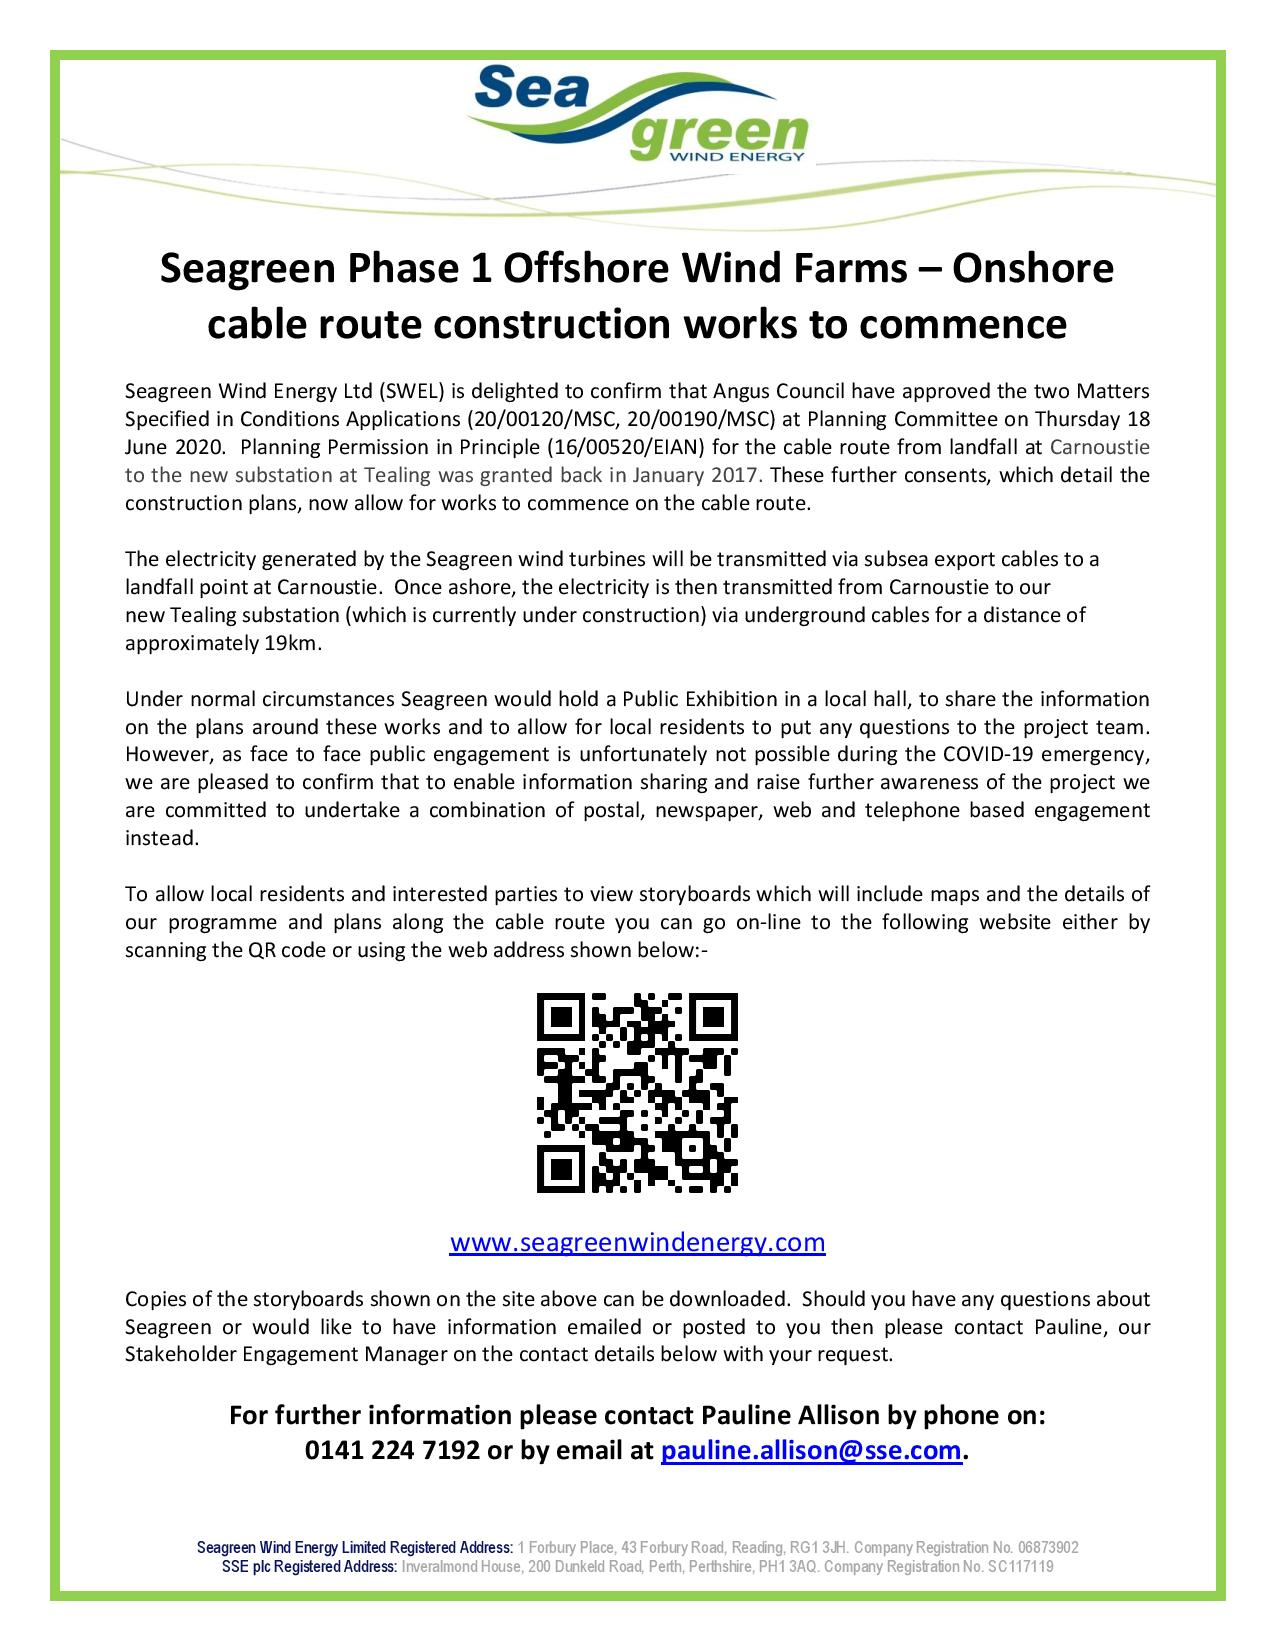 Seagreen cable route comms advert-page-001 (1)